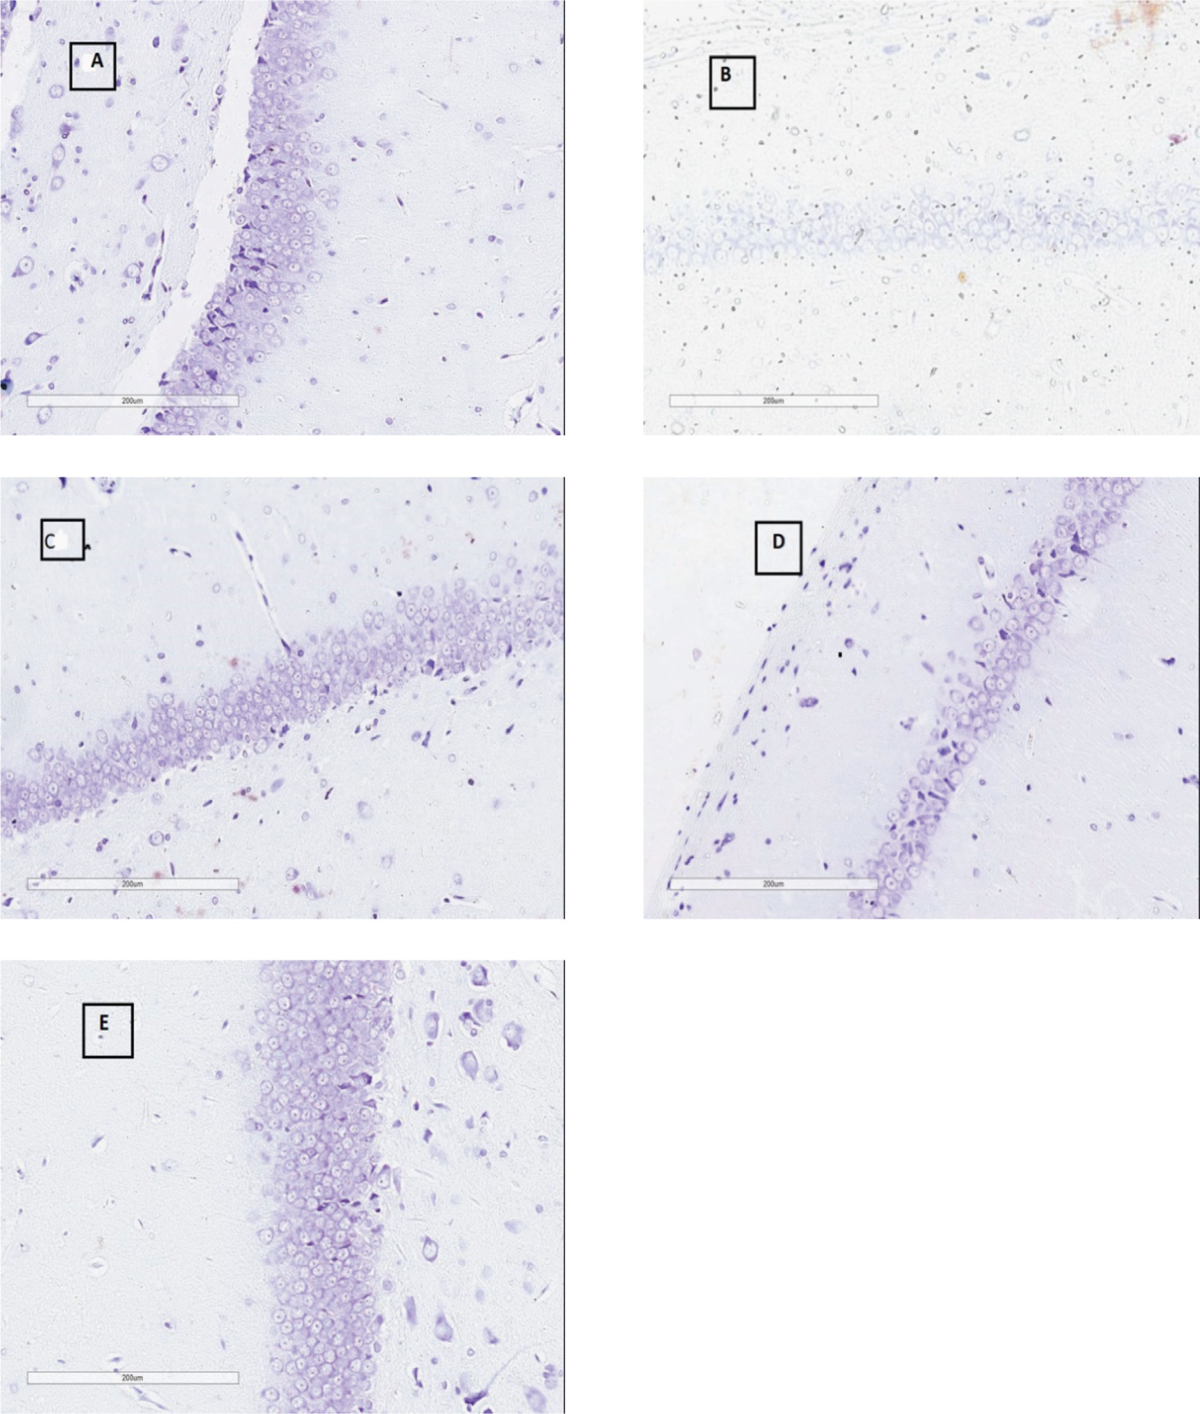 Figure 3 Pyramidal cells within 1 mm of CA-1 region of hippocampus under high power magnification (40x) in different groups of study Sham (A), 2VO (B), Vit E(C), CoQ10 (D), Combination group (E)